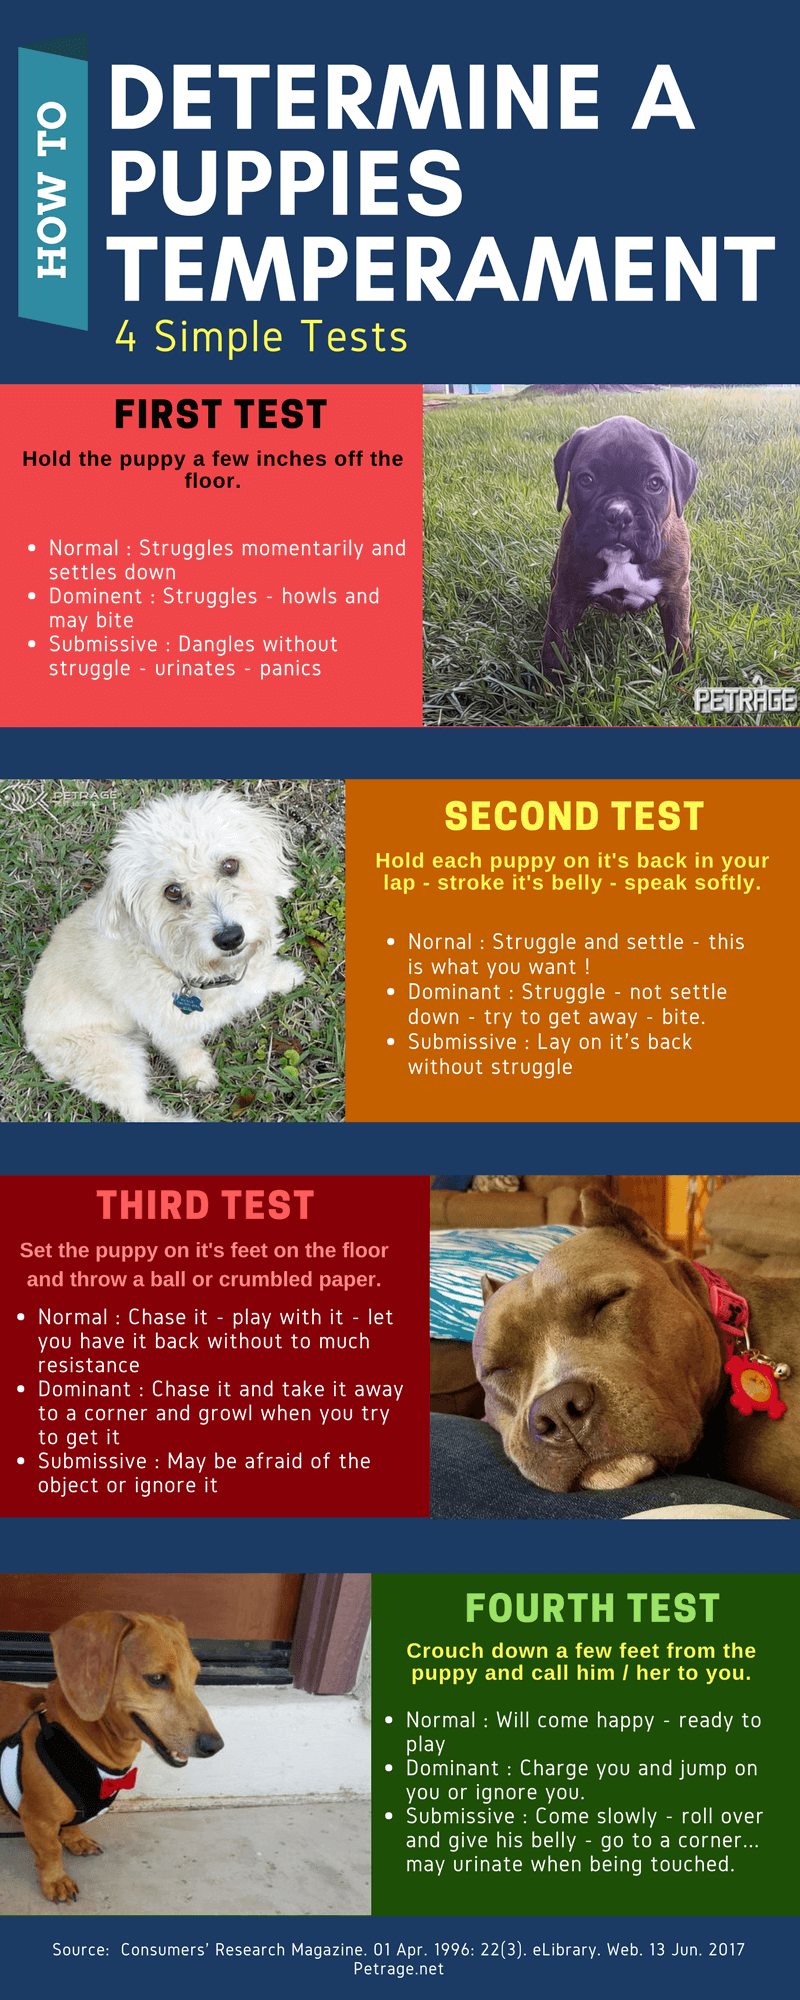 Tips and Techniques for Training a Rescue Dog